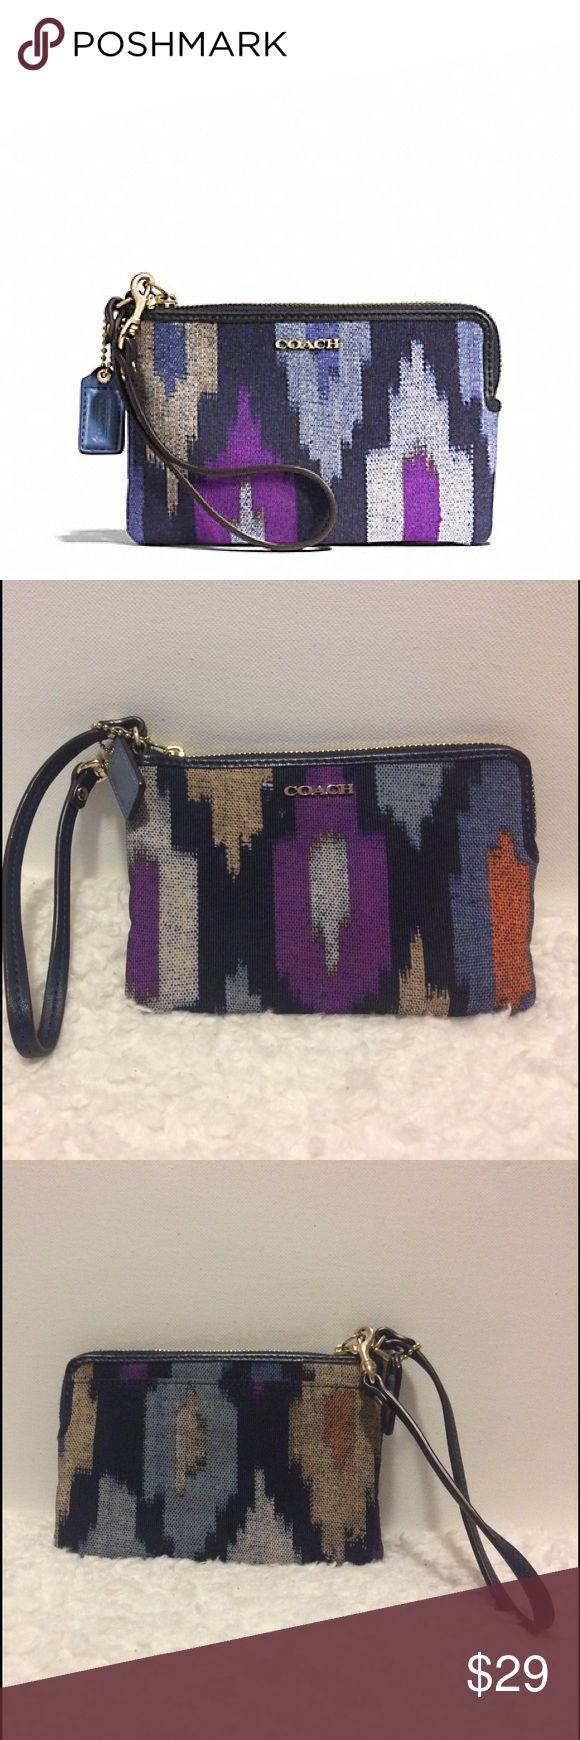 """COACH MADISON IKAT PRINT CANVAS ZIP SMALL WRISTLET MADISON IKAT PRINT CANVAS L-ZIP SMALL WRISTLET COACH F51418 LIGHT GOLD/BLUE MULTI Details Ikat print fabric with leather trim  Zip-top closure, fabric lining  Strap with clip to form a wrist strap or attach to the inside of a bag  6 1/4"""" (L) x 4"""" (H) x 1/2"""" (W)  This is a signature product Coach Bags Clutches & Wristlets"""